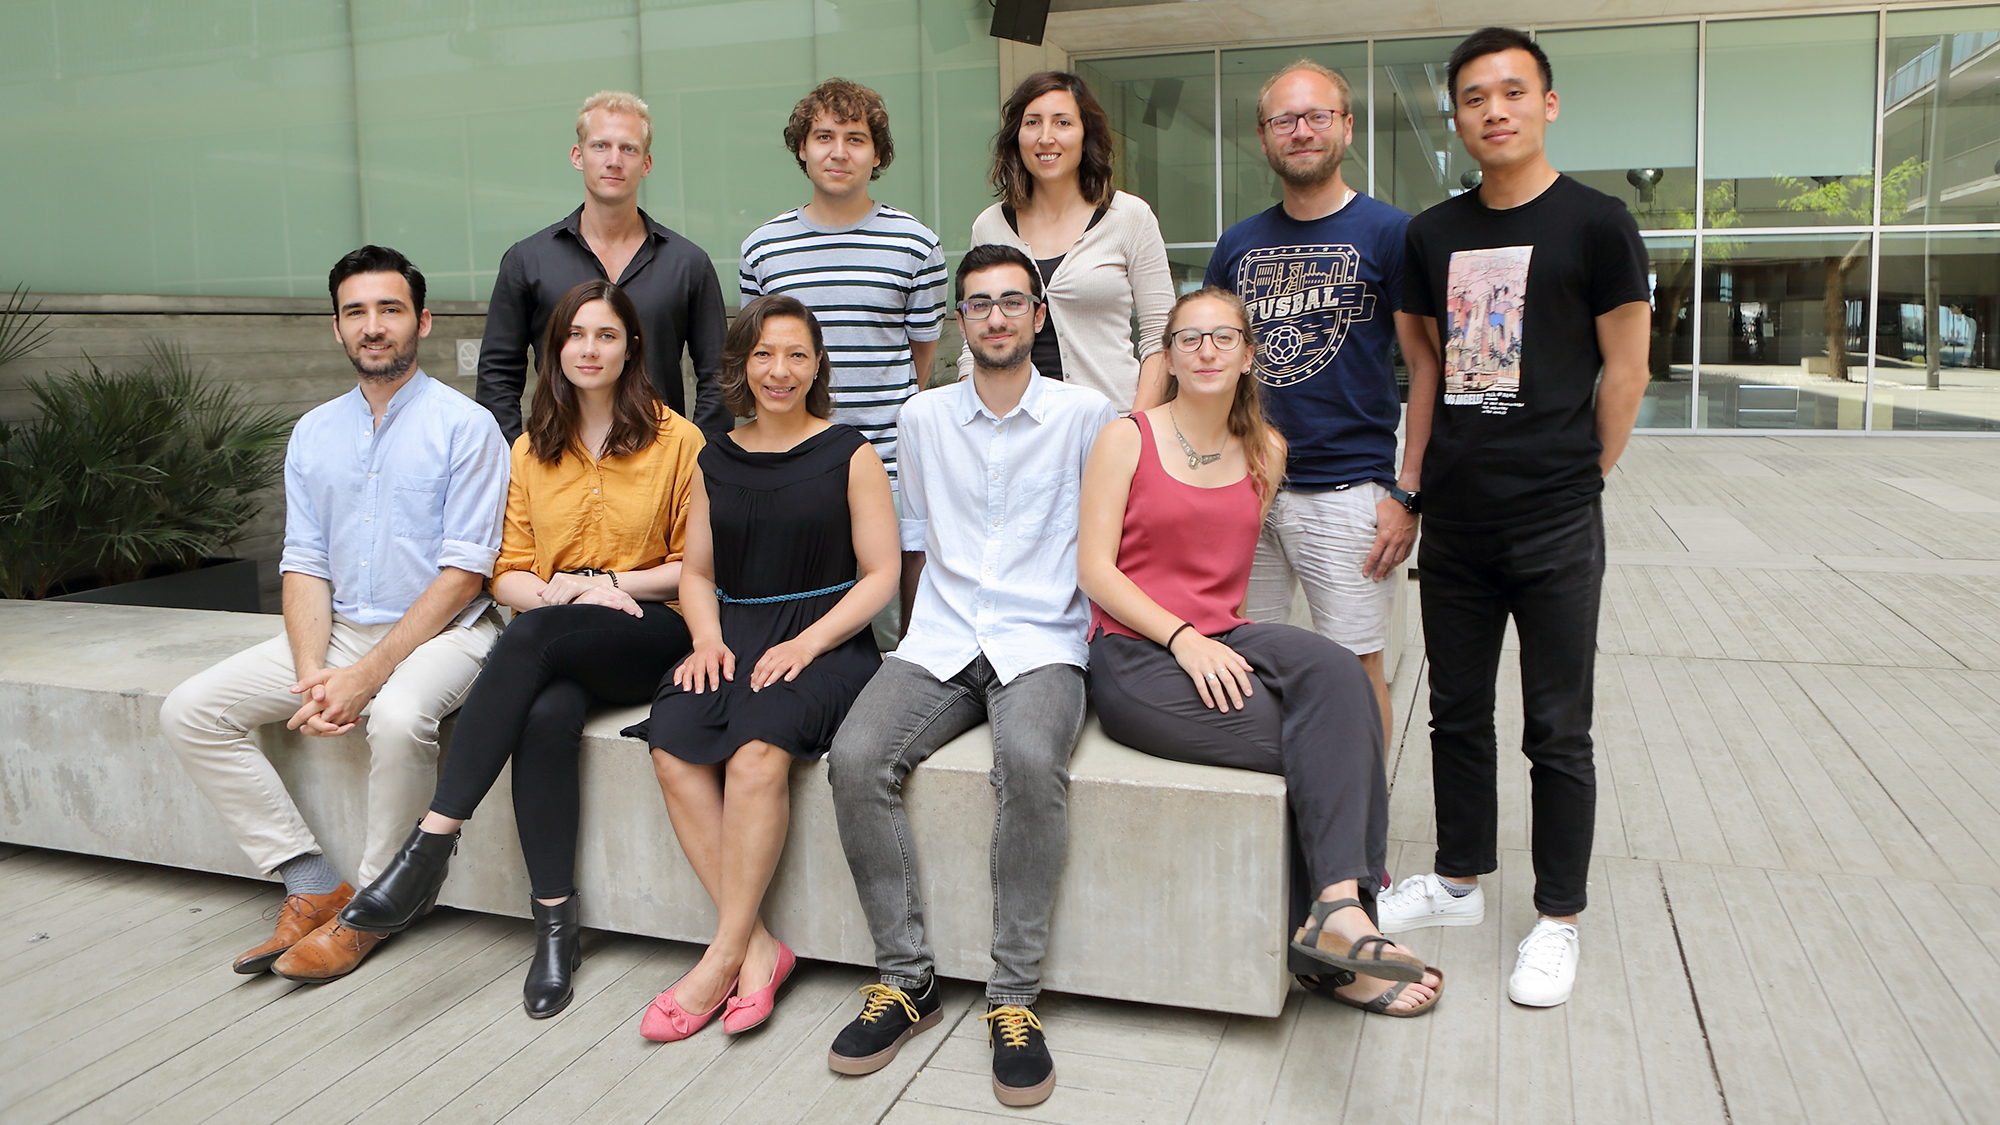 Understanding how environmental information is converted into molecular information in sperm RNAs, and then transmit across generations, is the next exciting and unanswered question for this CRG team.